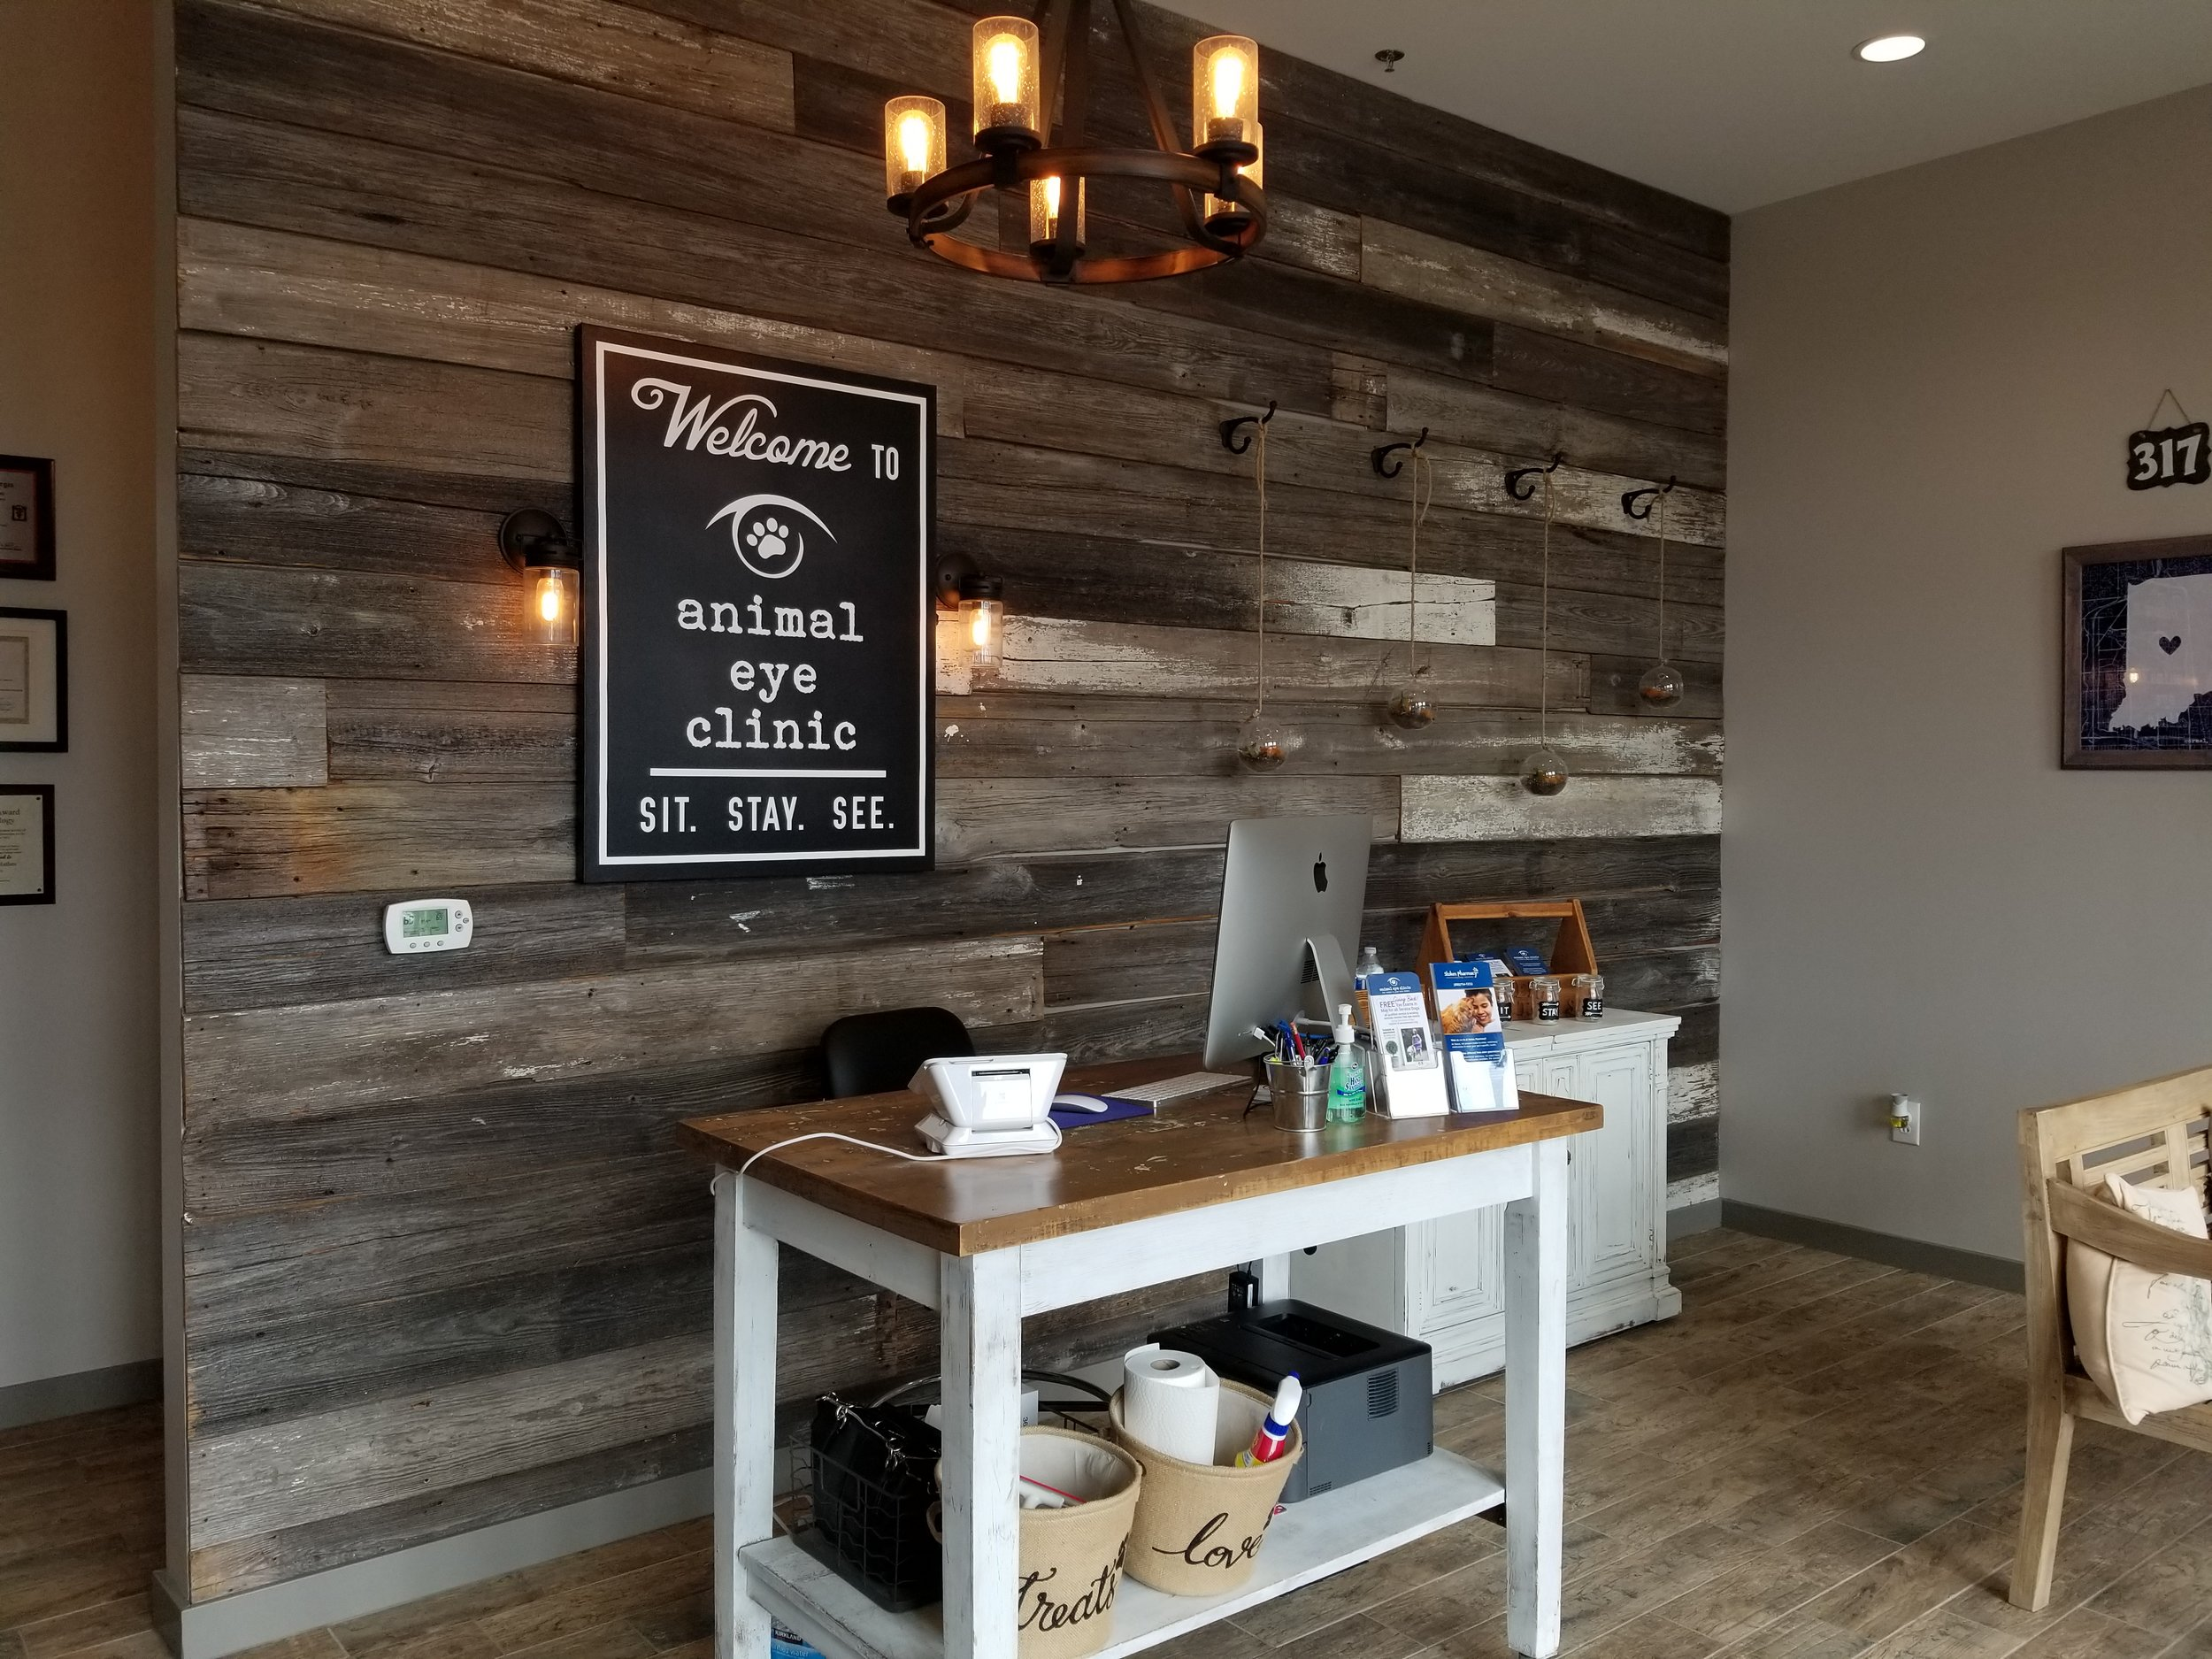 Great for businesses and offices: Indy Animal Eye Clinic